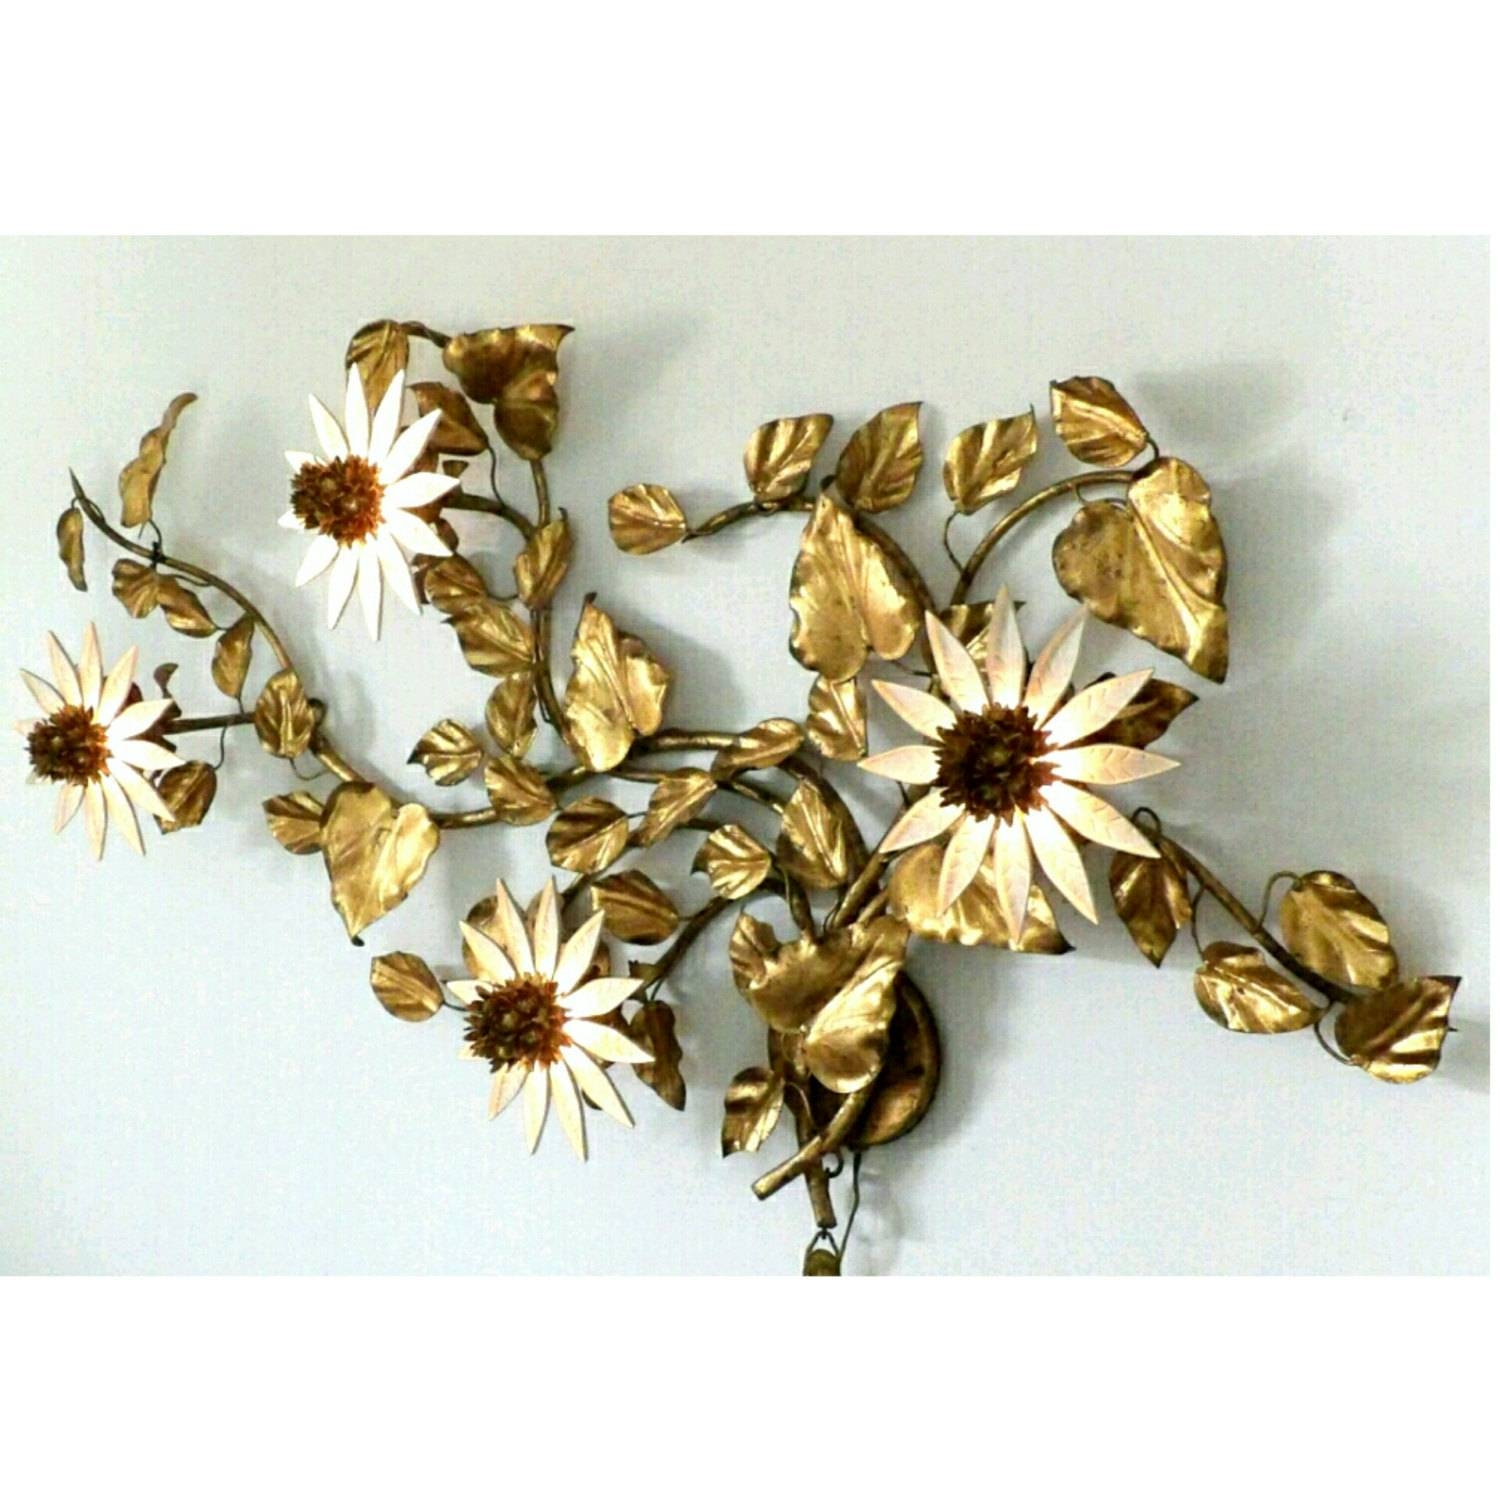 Brevettato Italian Lighted Metal Wall Art Sconce Floral With Regard To Latest Floral Metal Wall Art (View 4 of 20)